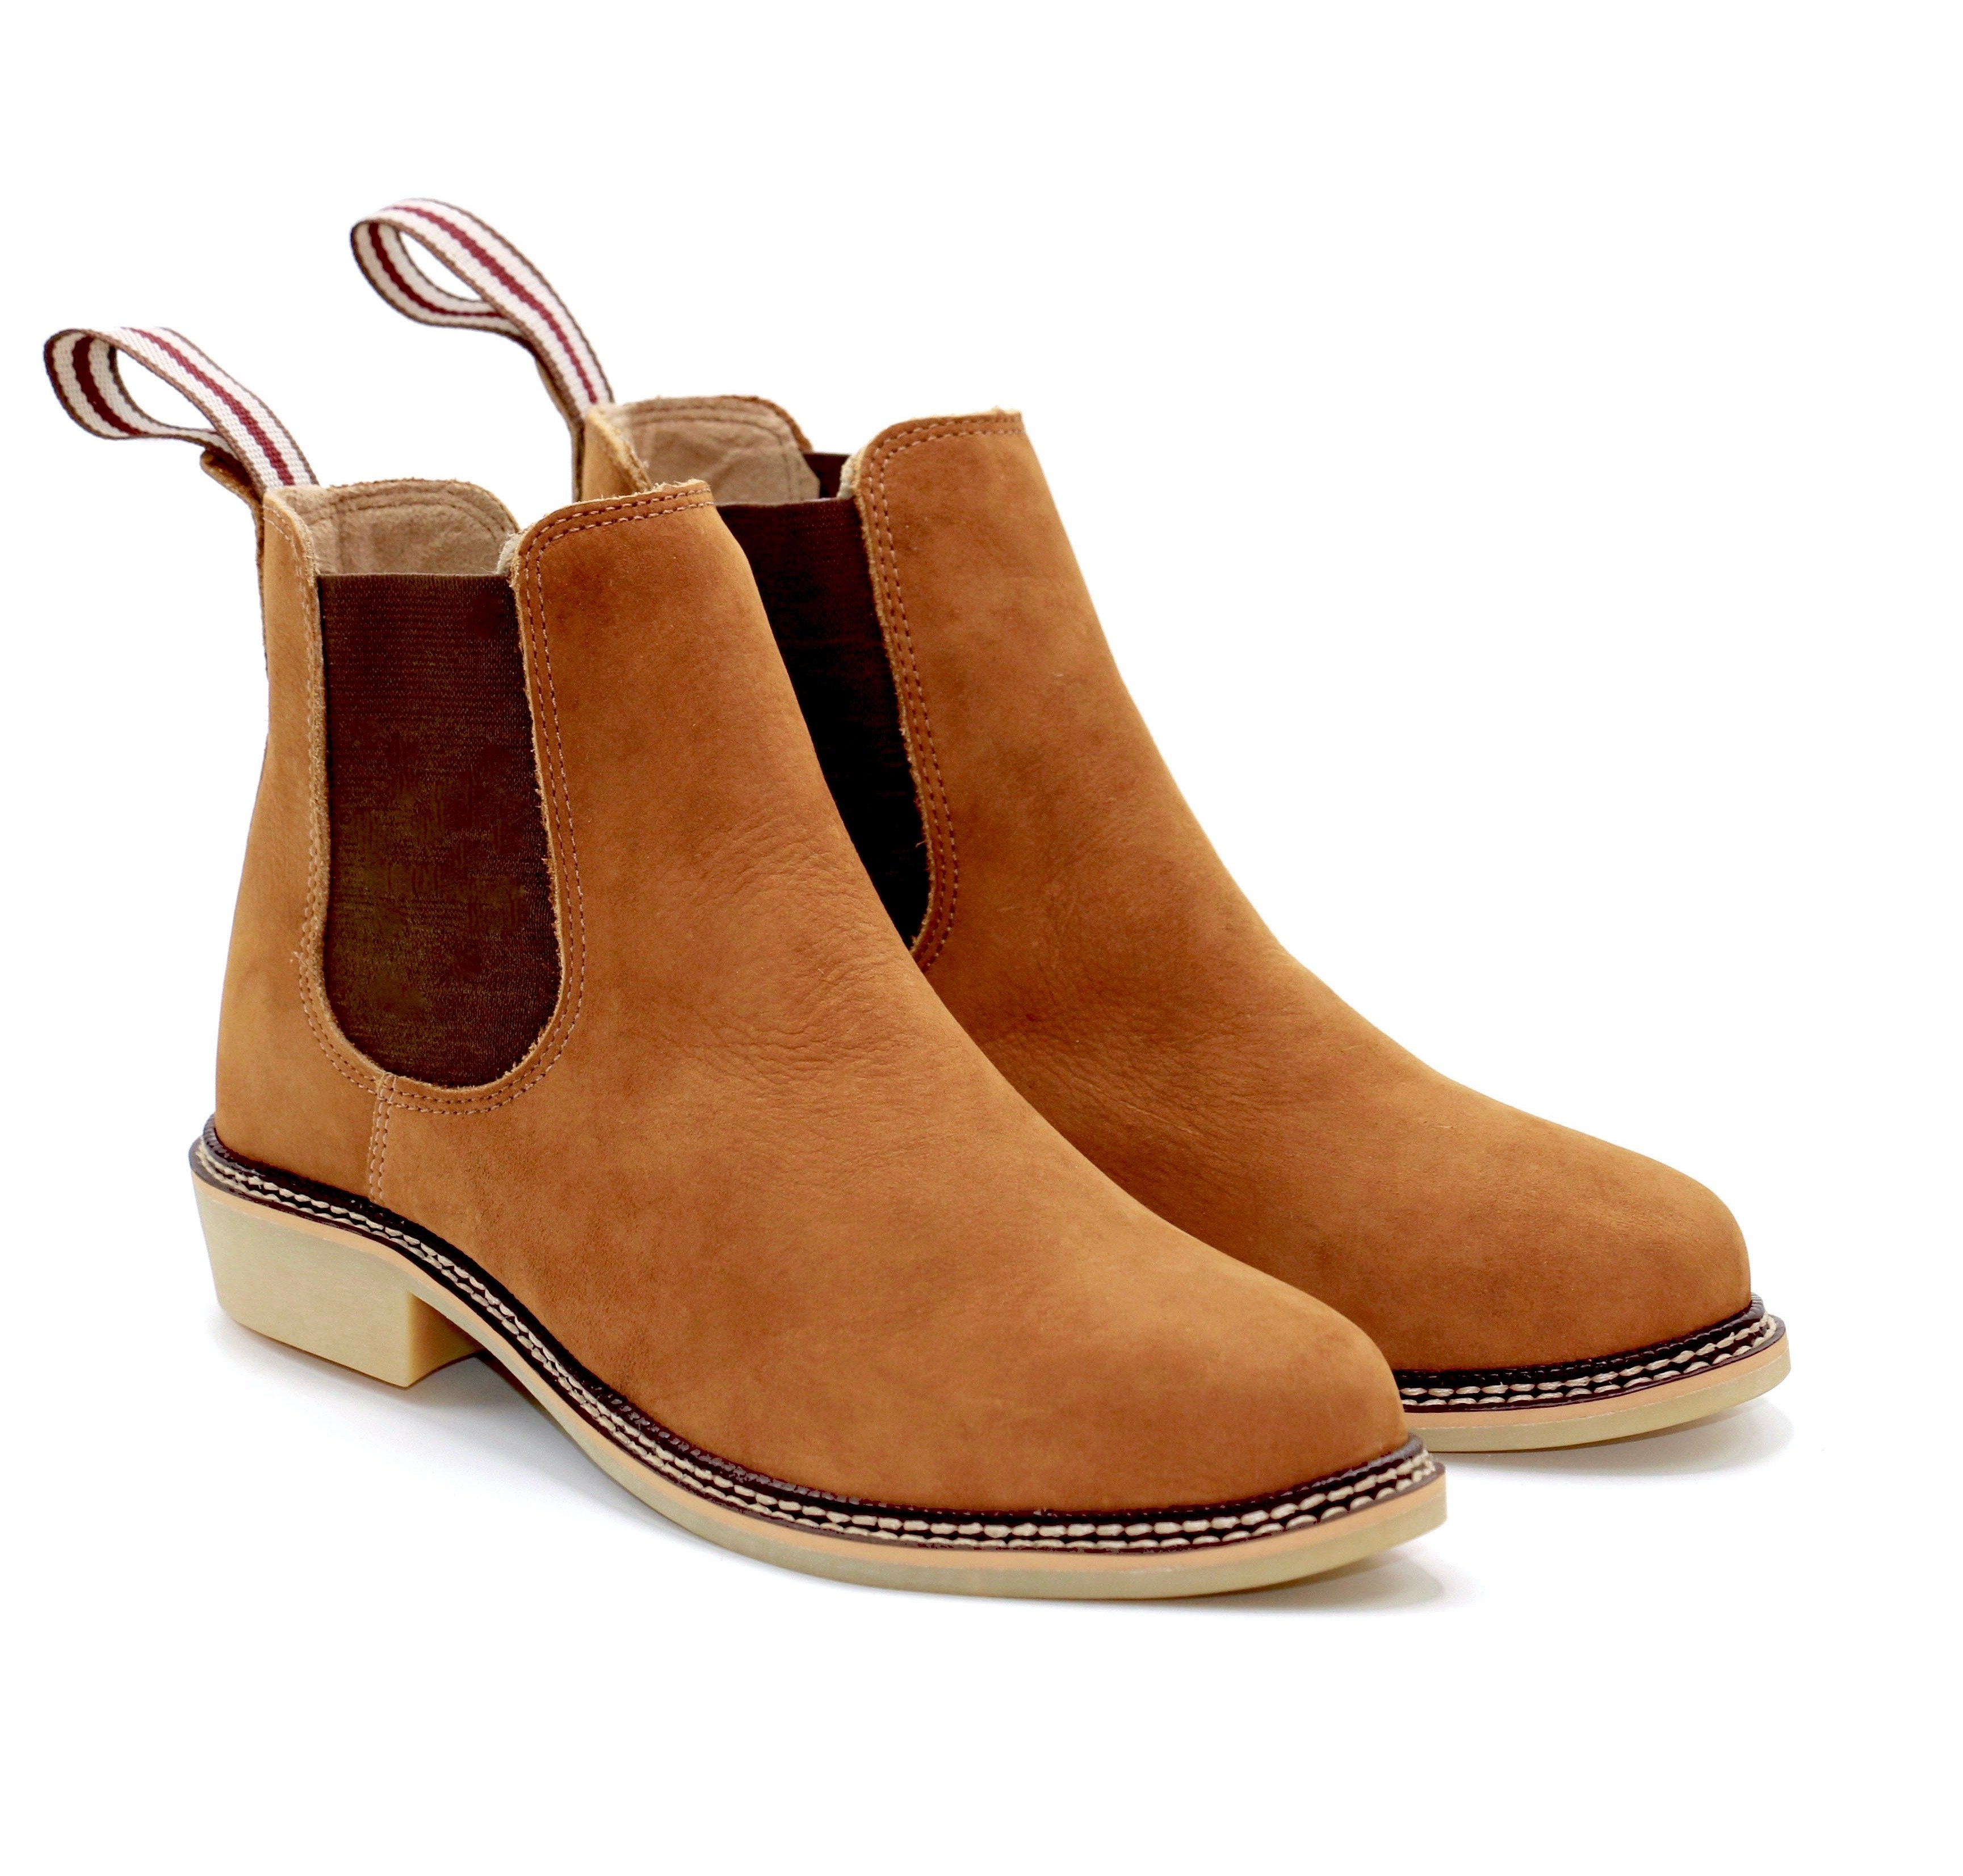 6fa55f13c824a ... Genuine chelsea boots women genuine leather light brown comfortable  shoes travel ...